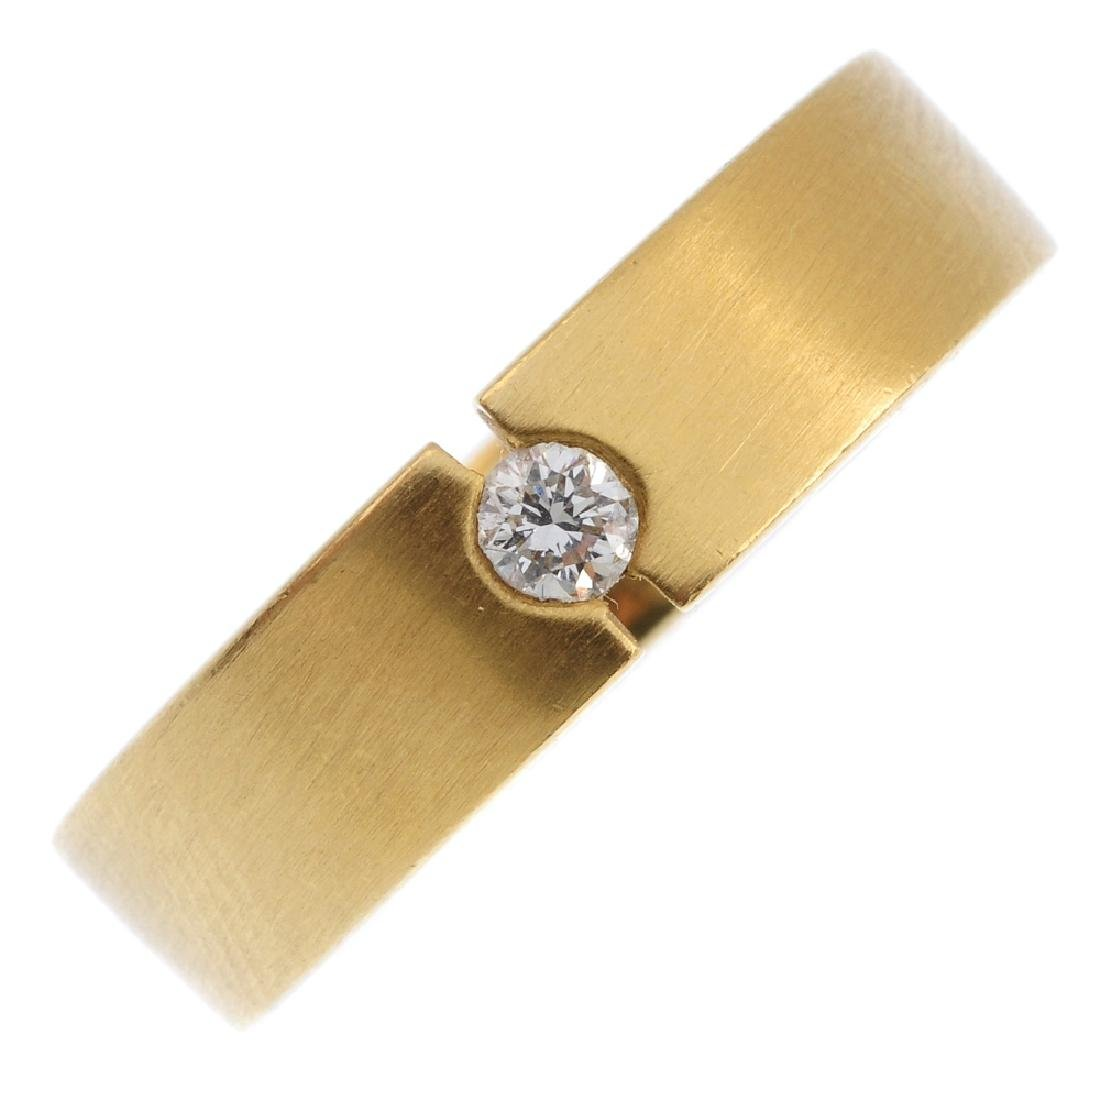 An 18ct gold diamond band ring. The brilliant-cut